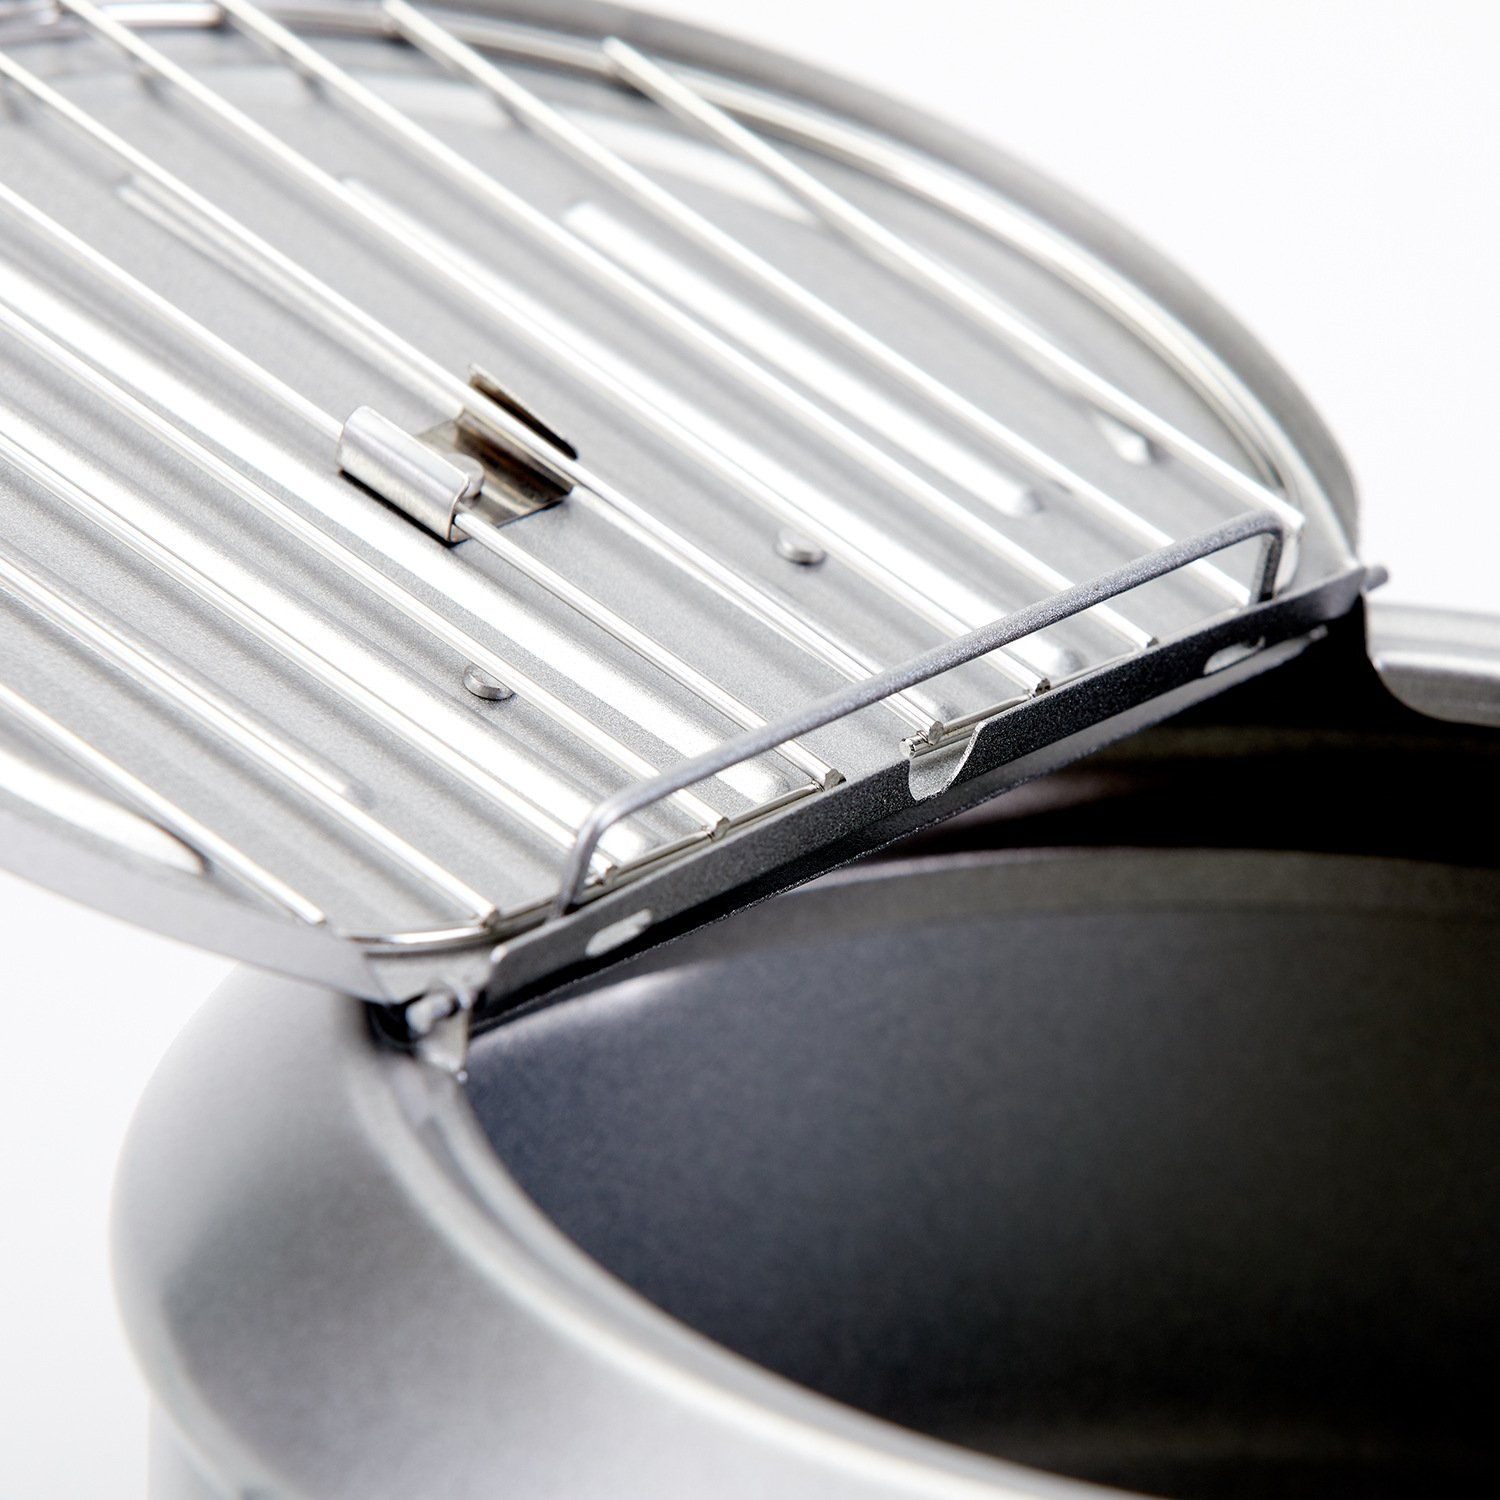 Stainless Steel Not-Stick Frying Pan